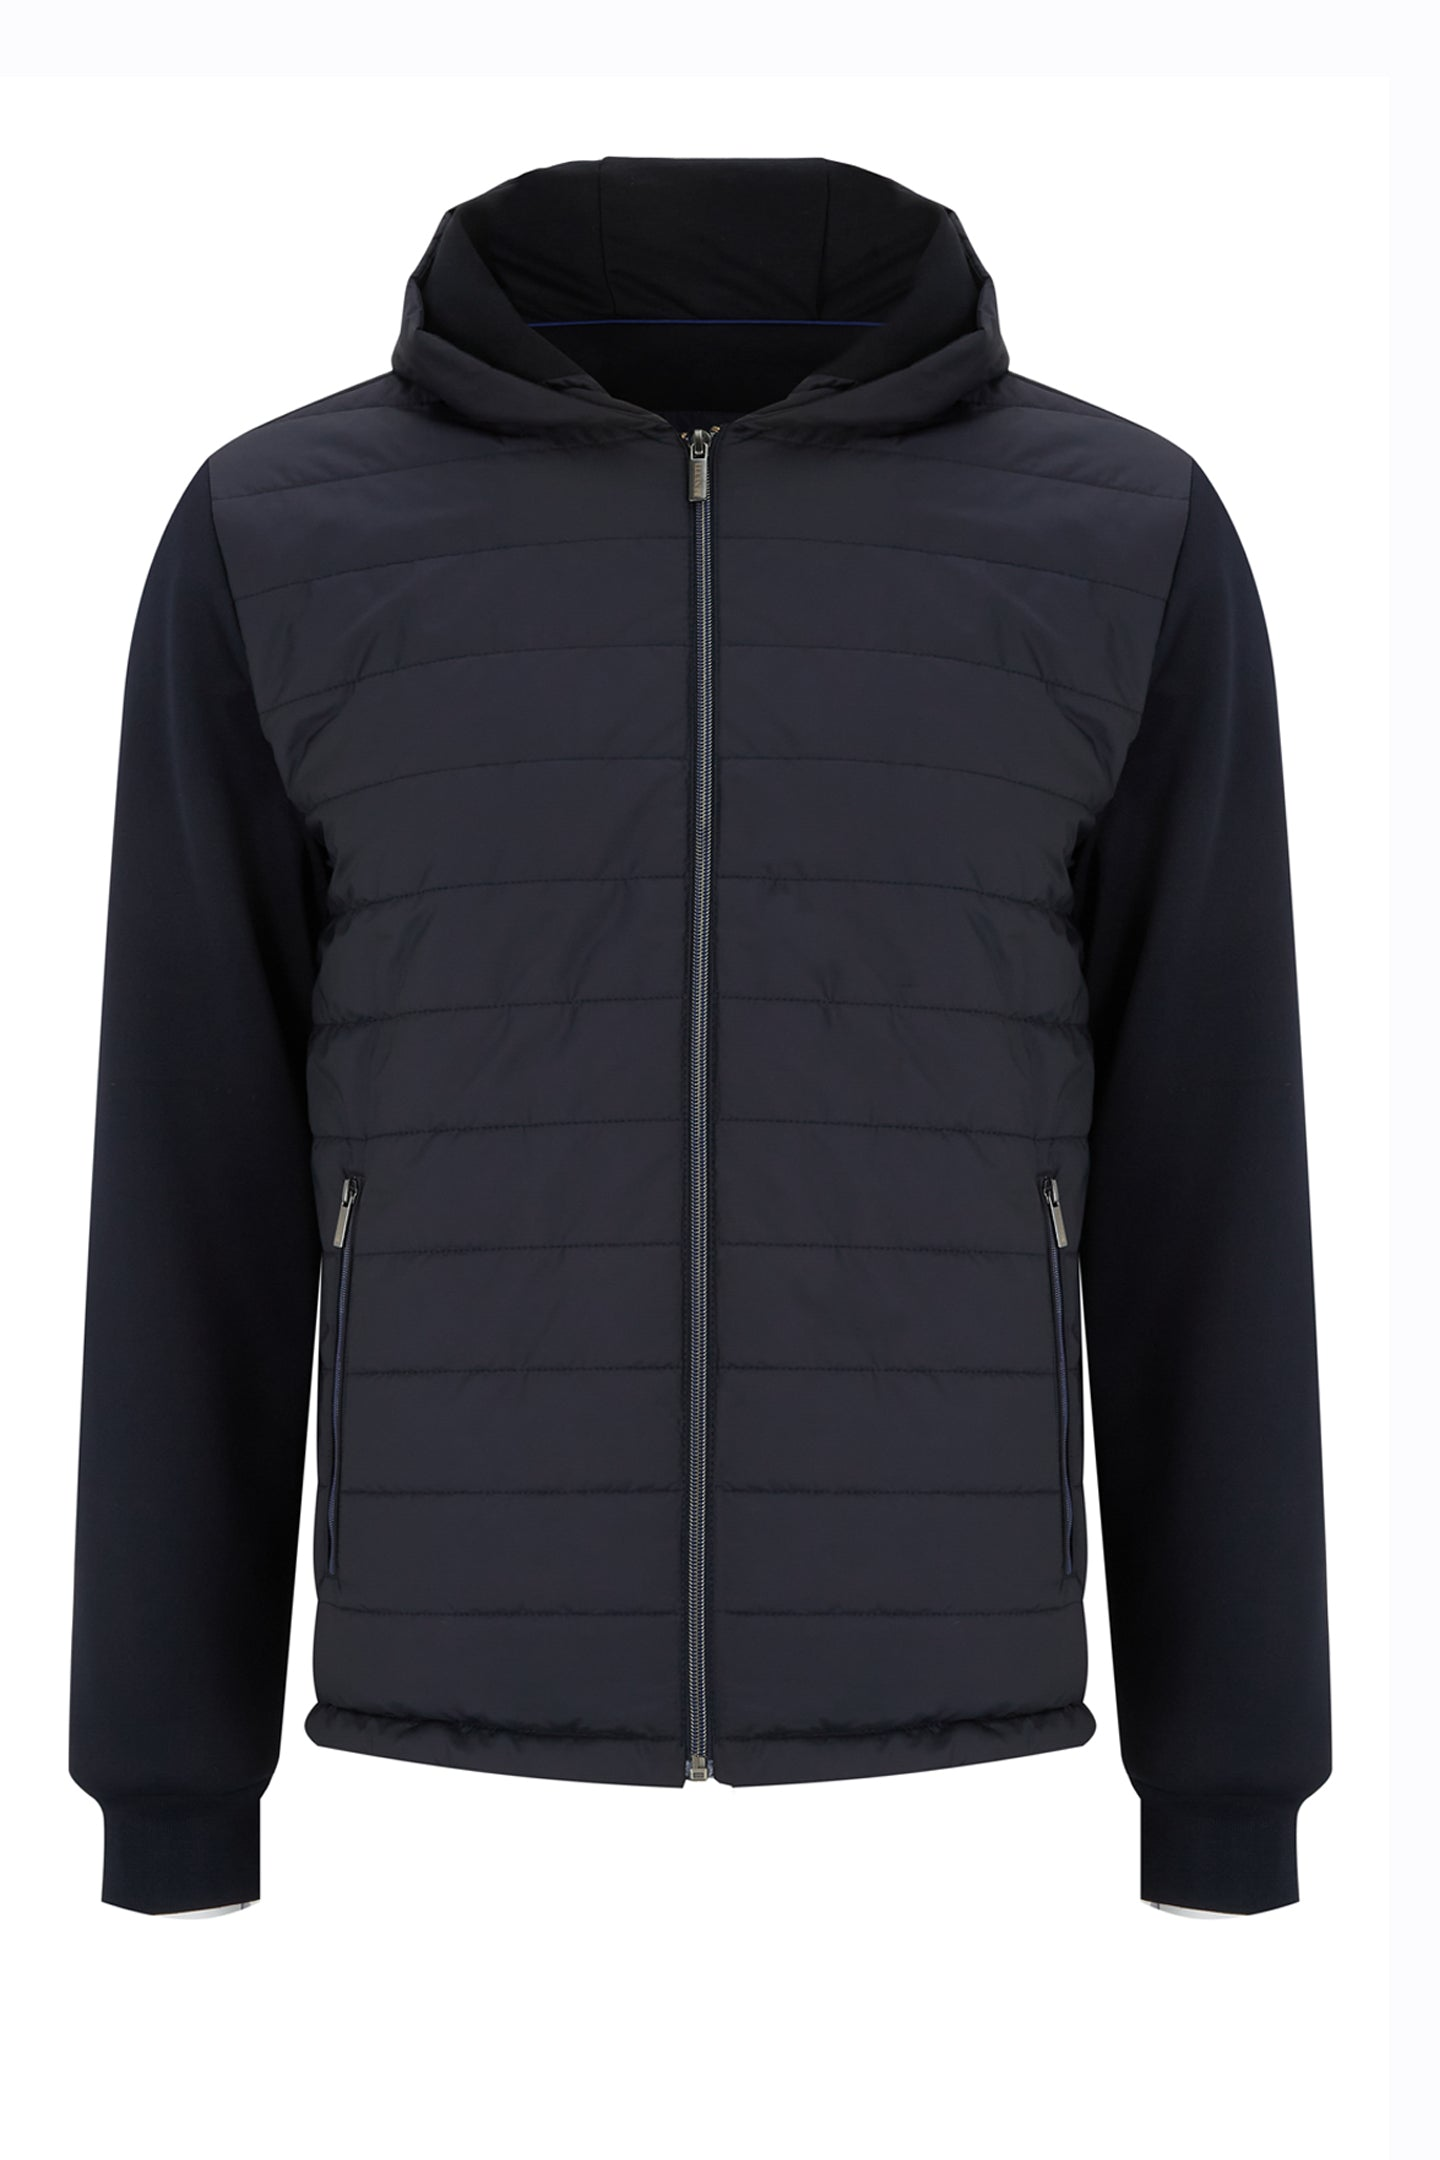 Vienna_Navy_Zip_Thru_Benetti_Jacket